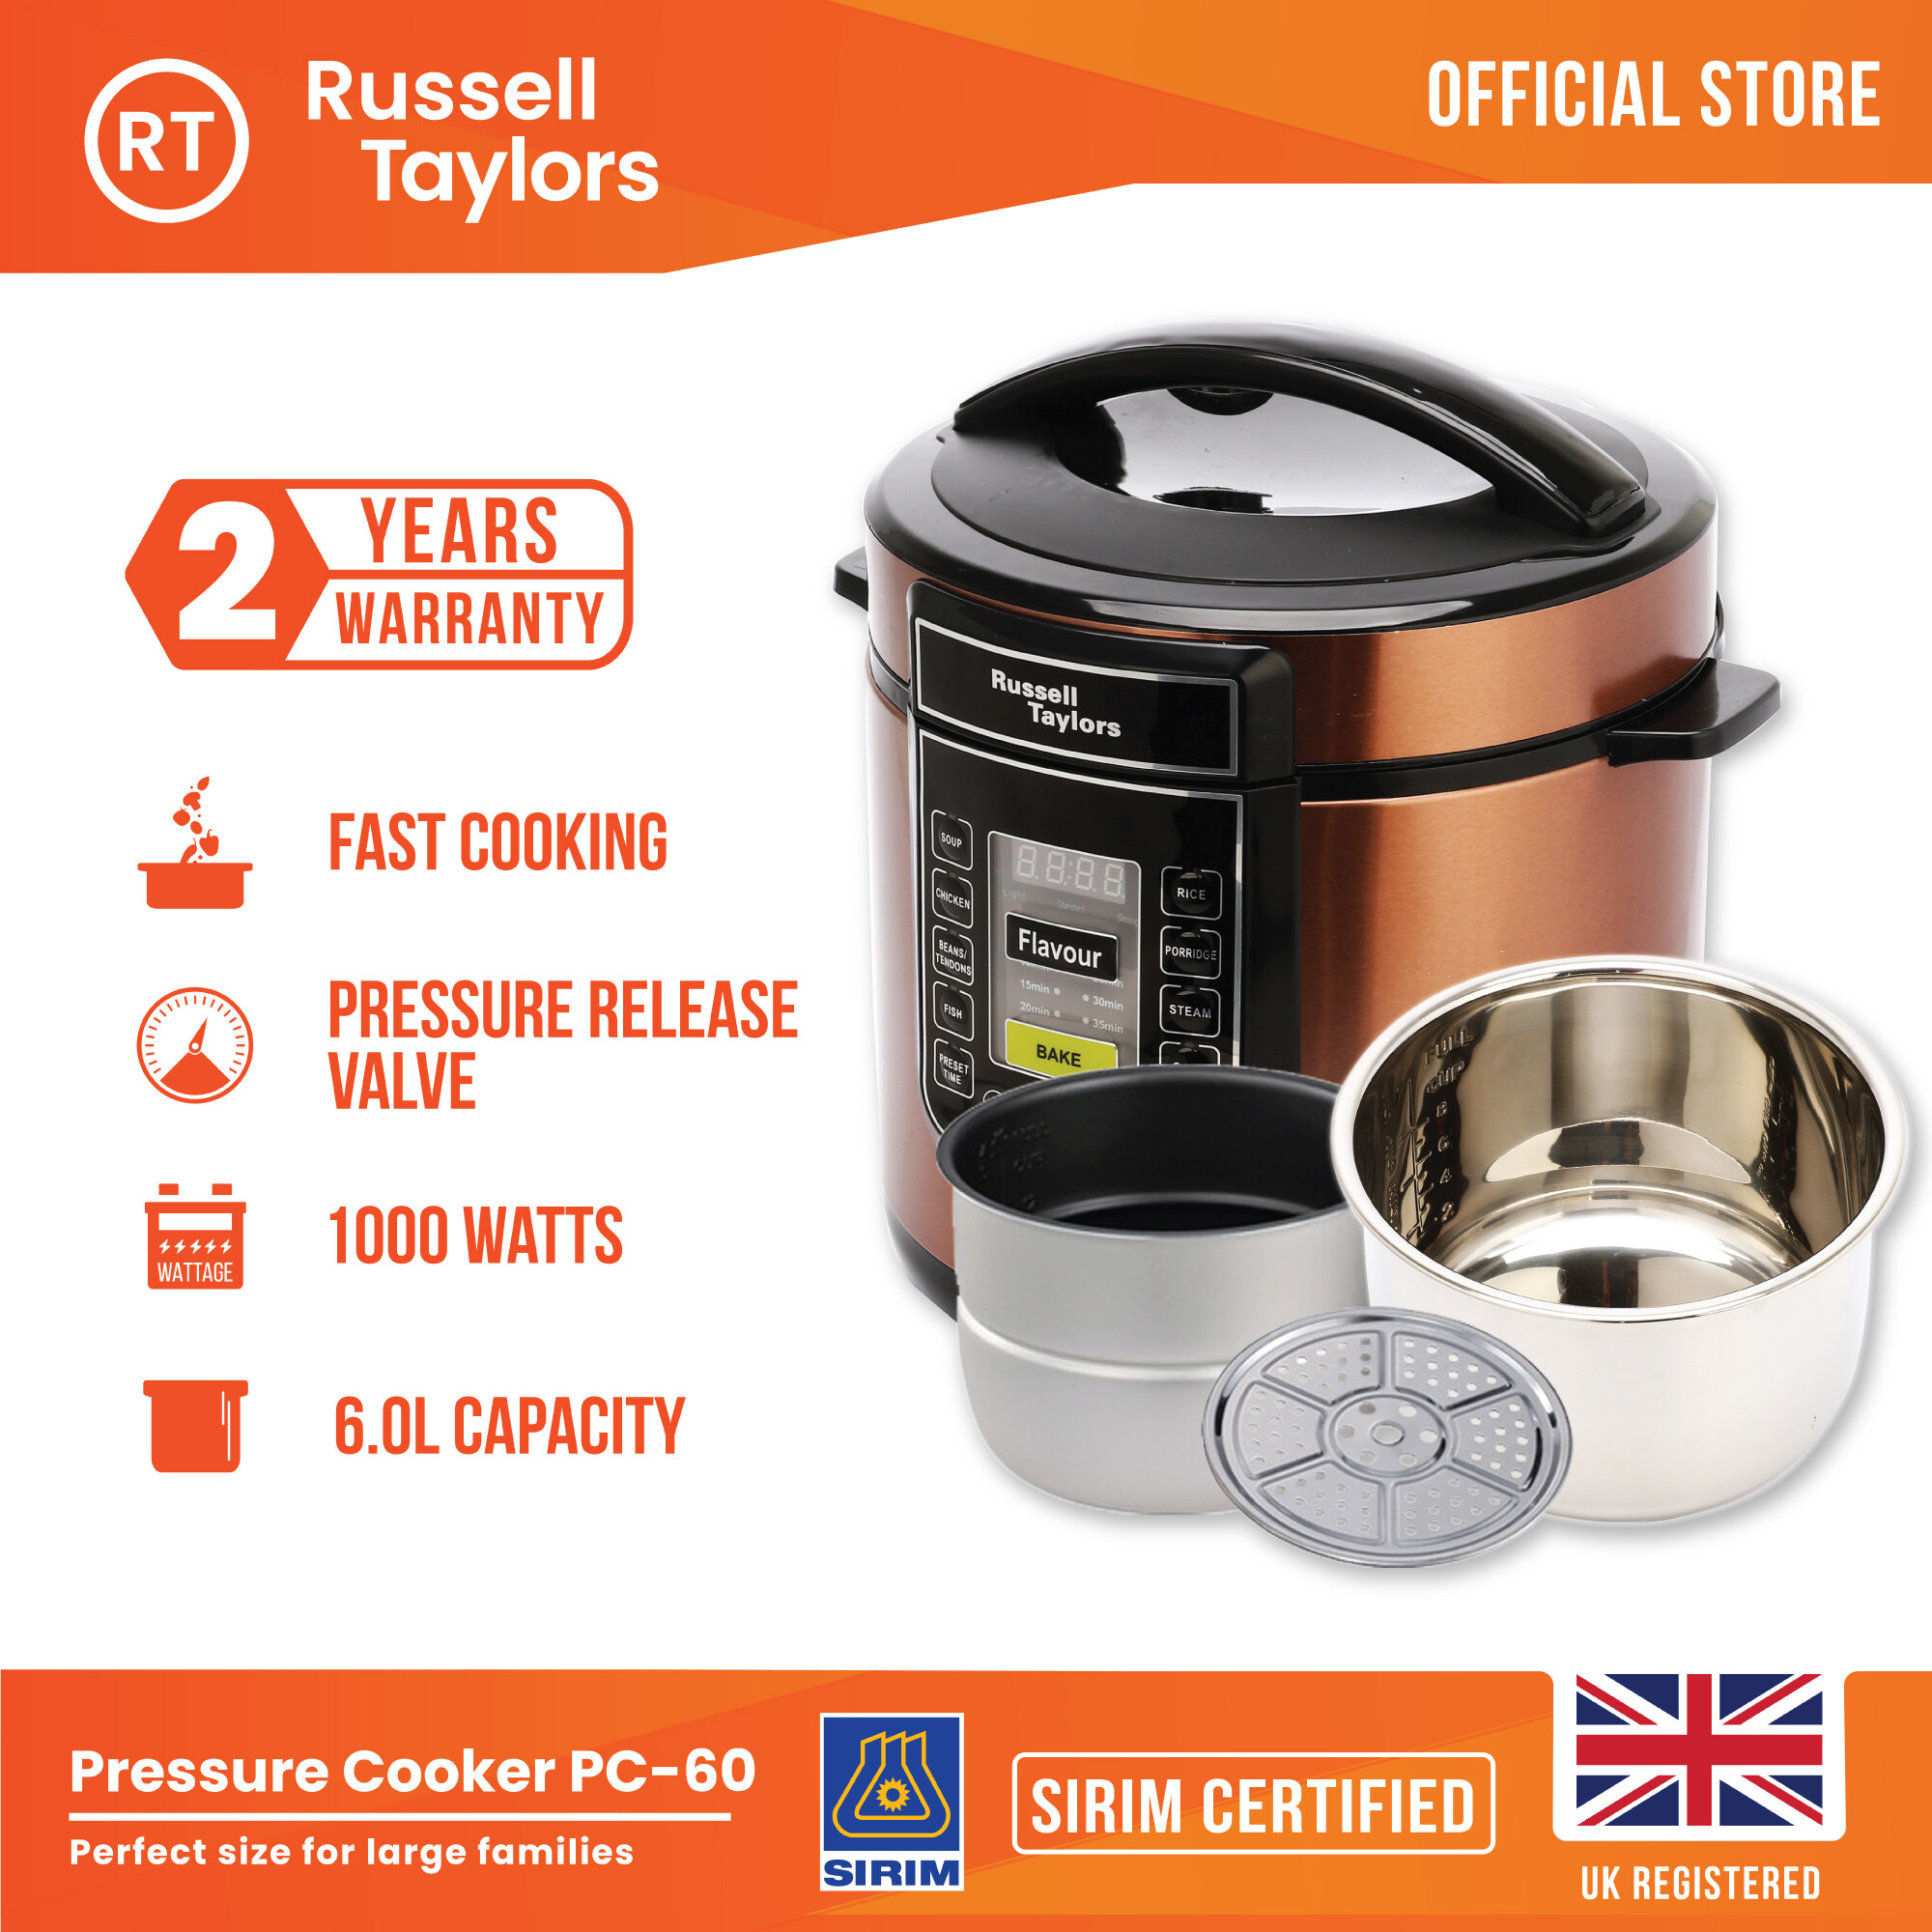 Russell Taylors 6L Dual Pot Pressure Cooker PC-60 (2 inner pots + 1 steam rack) Electric Pressure Cooker